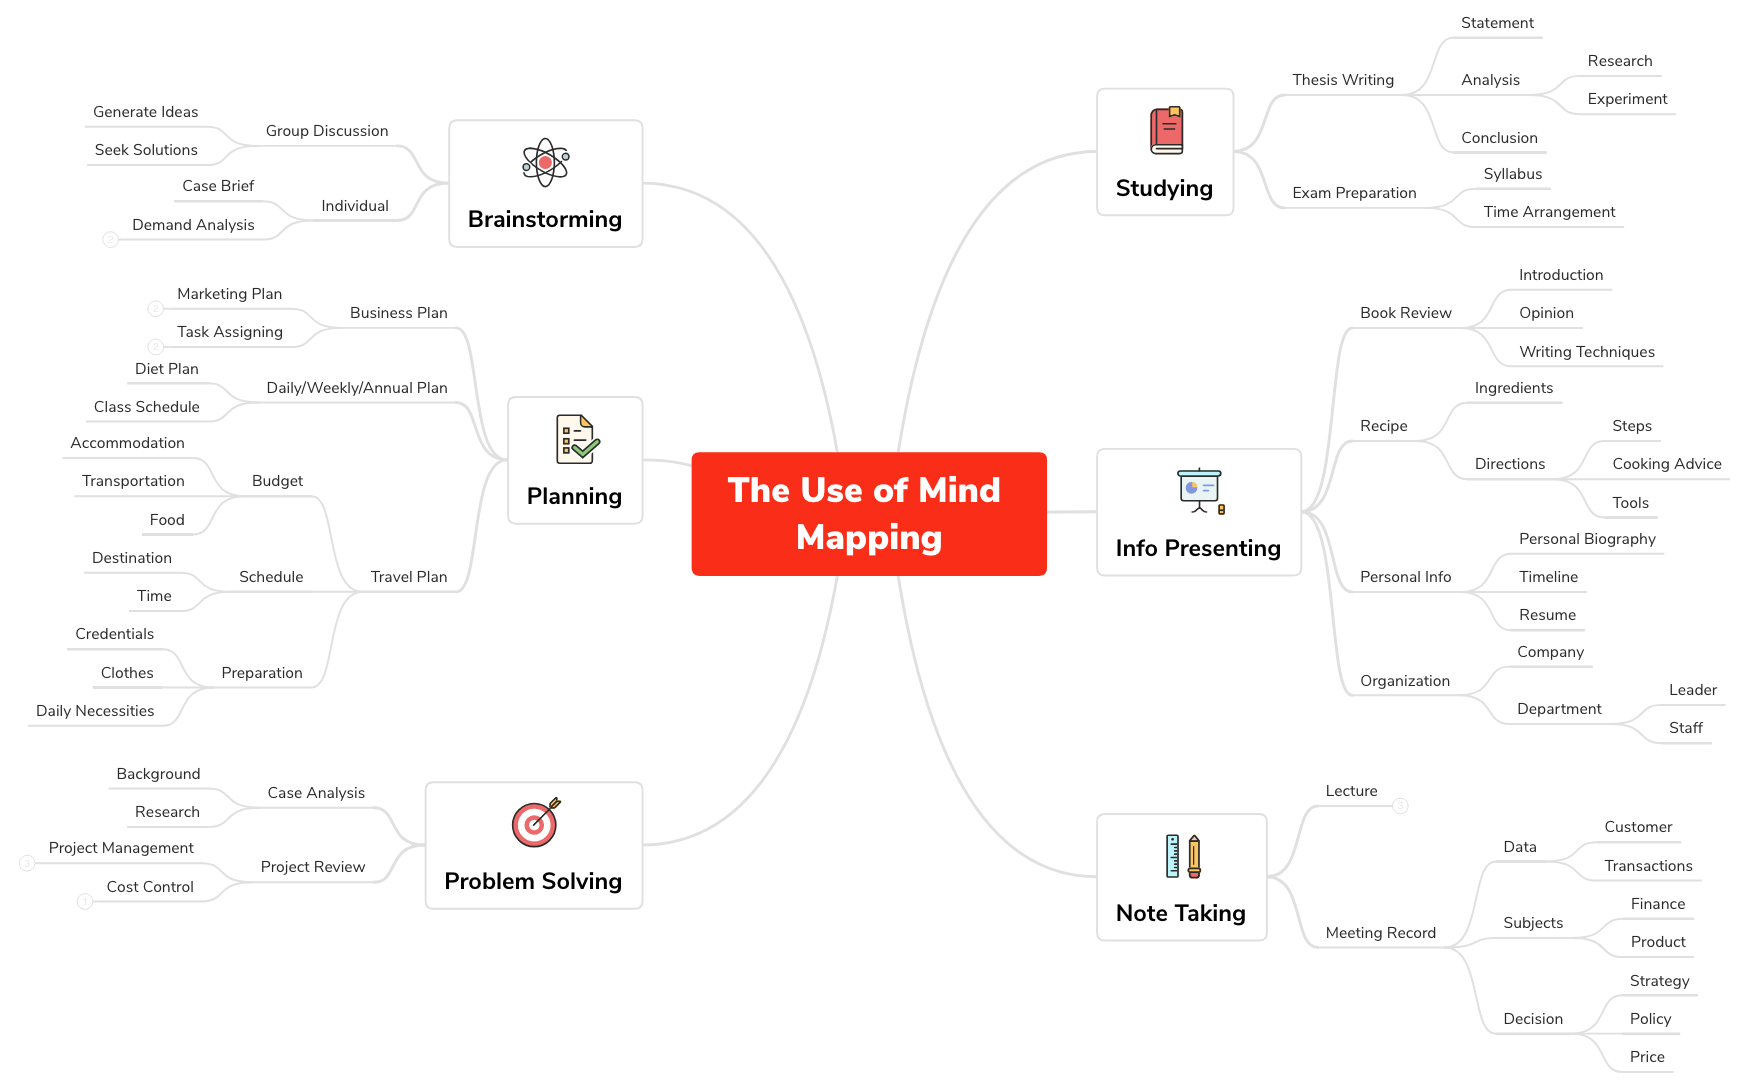 The Use of Mind Mapping